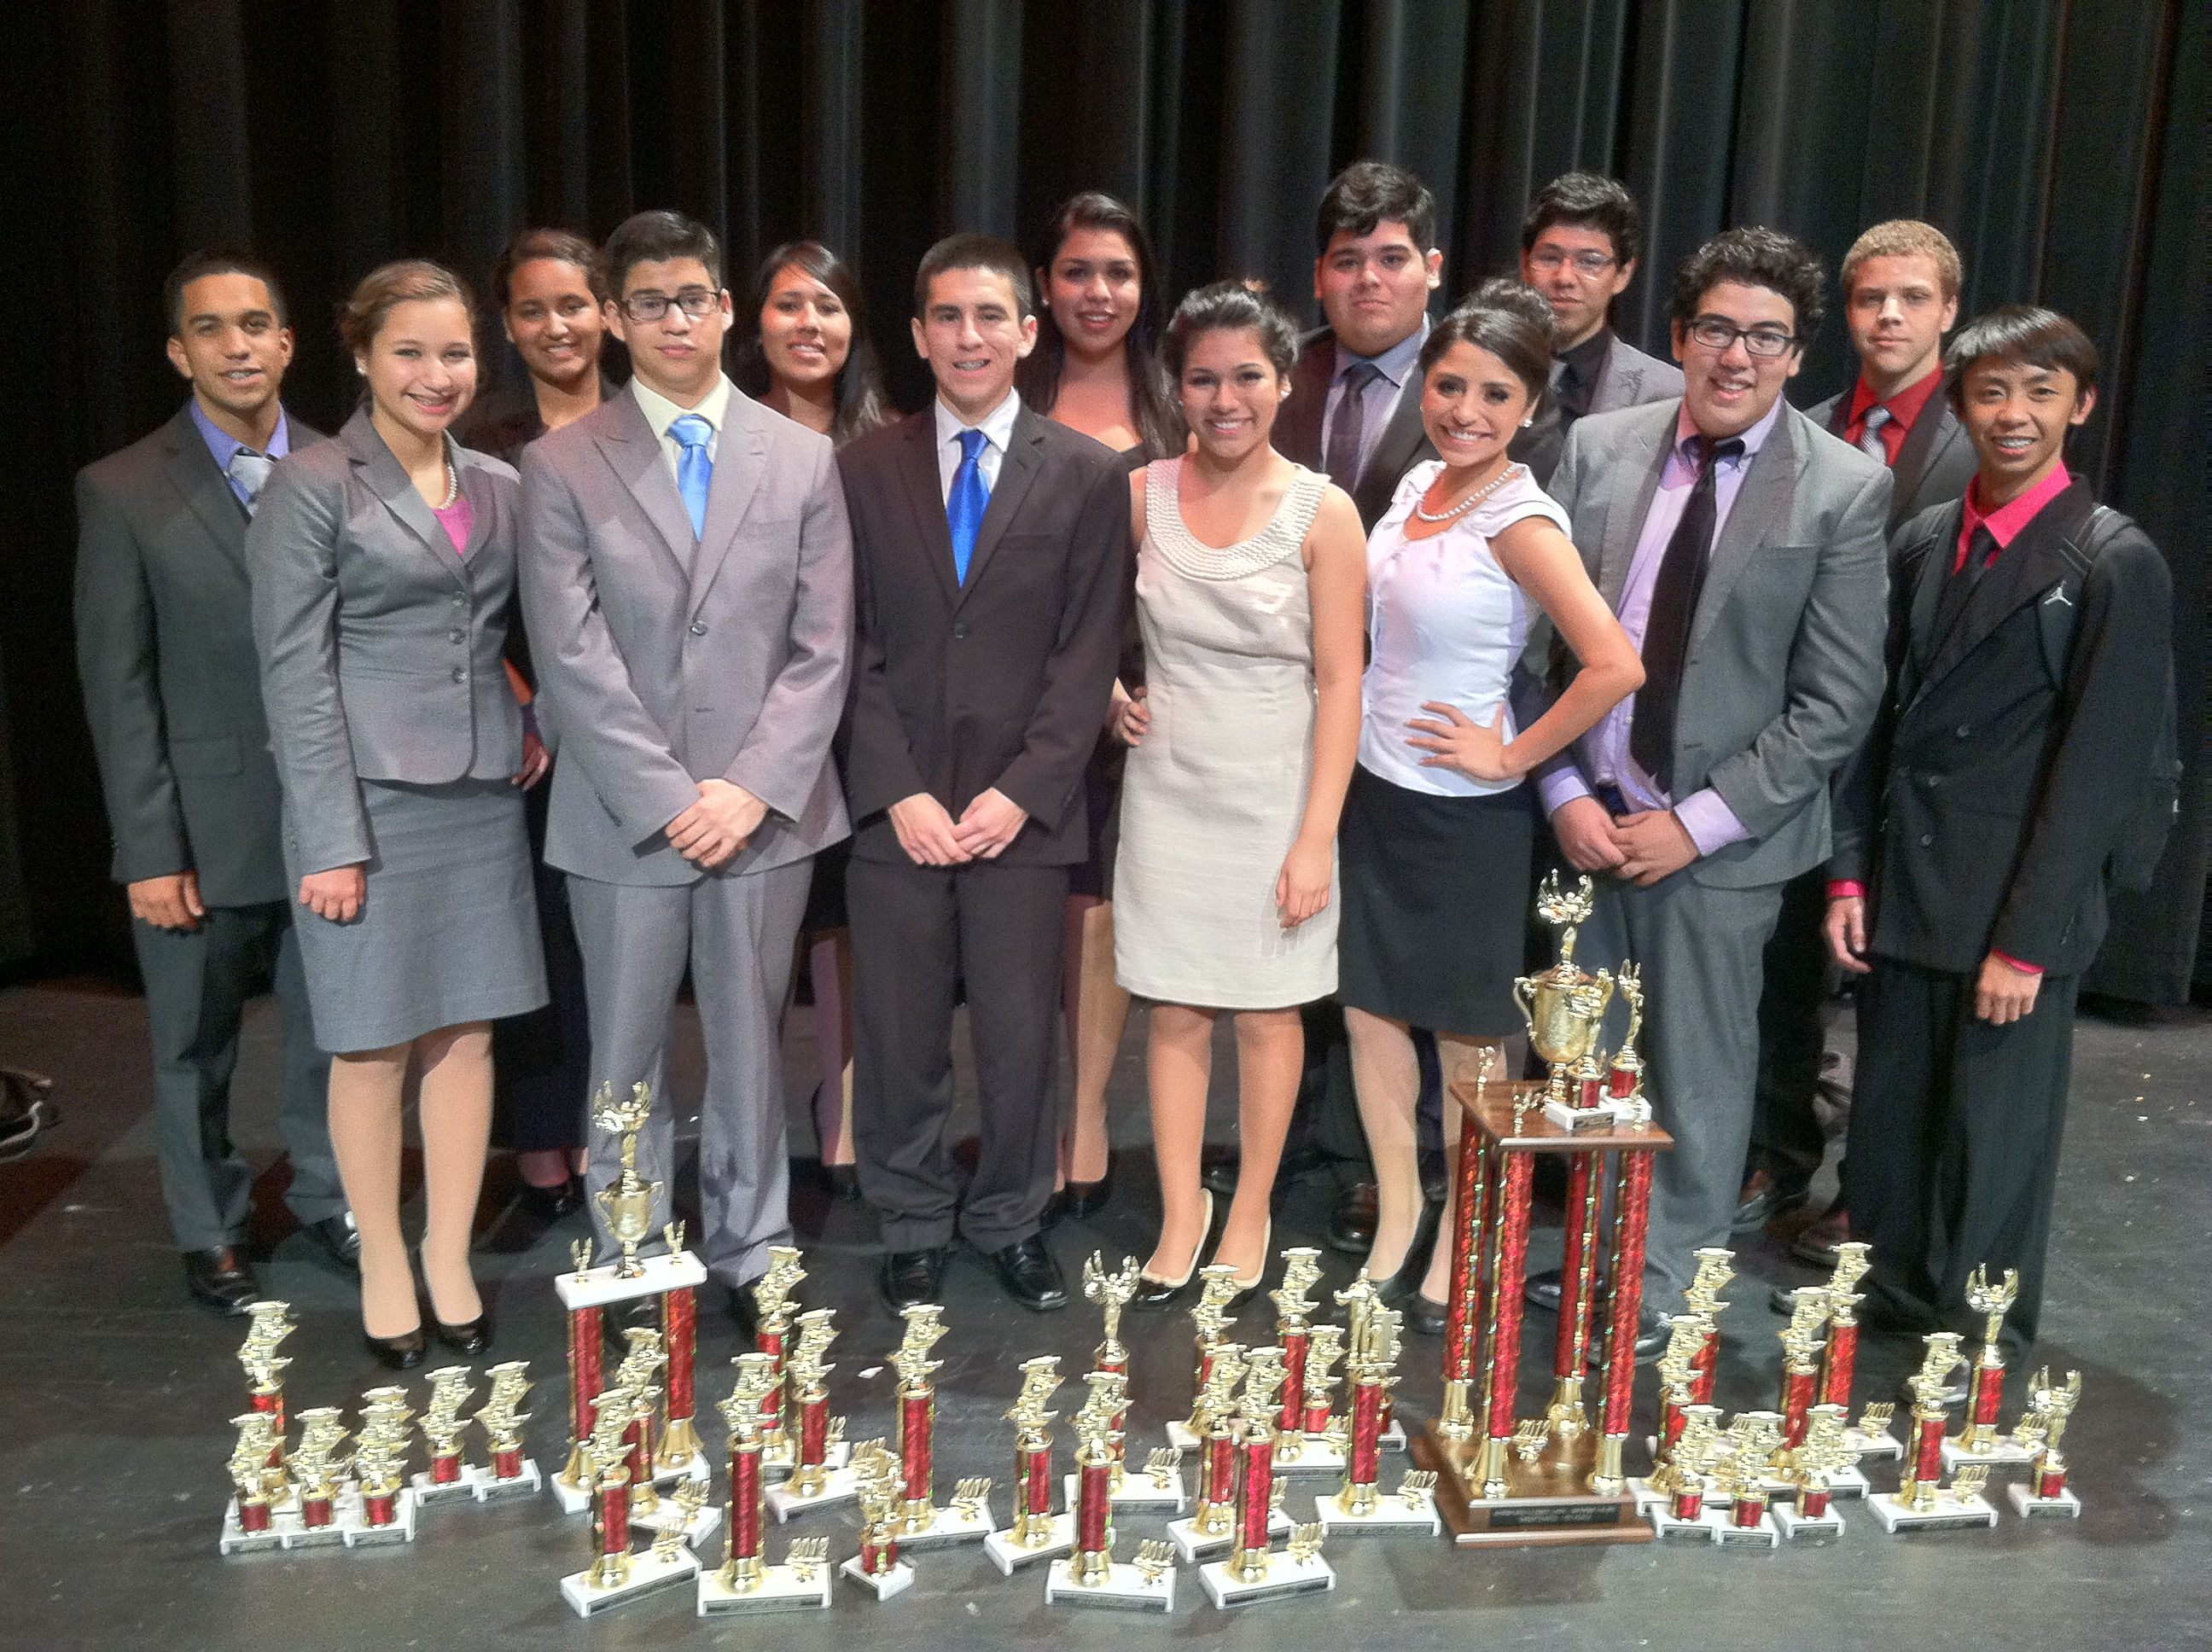 Harlingen High School South Speech, Drama and Debate team sweeps competition